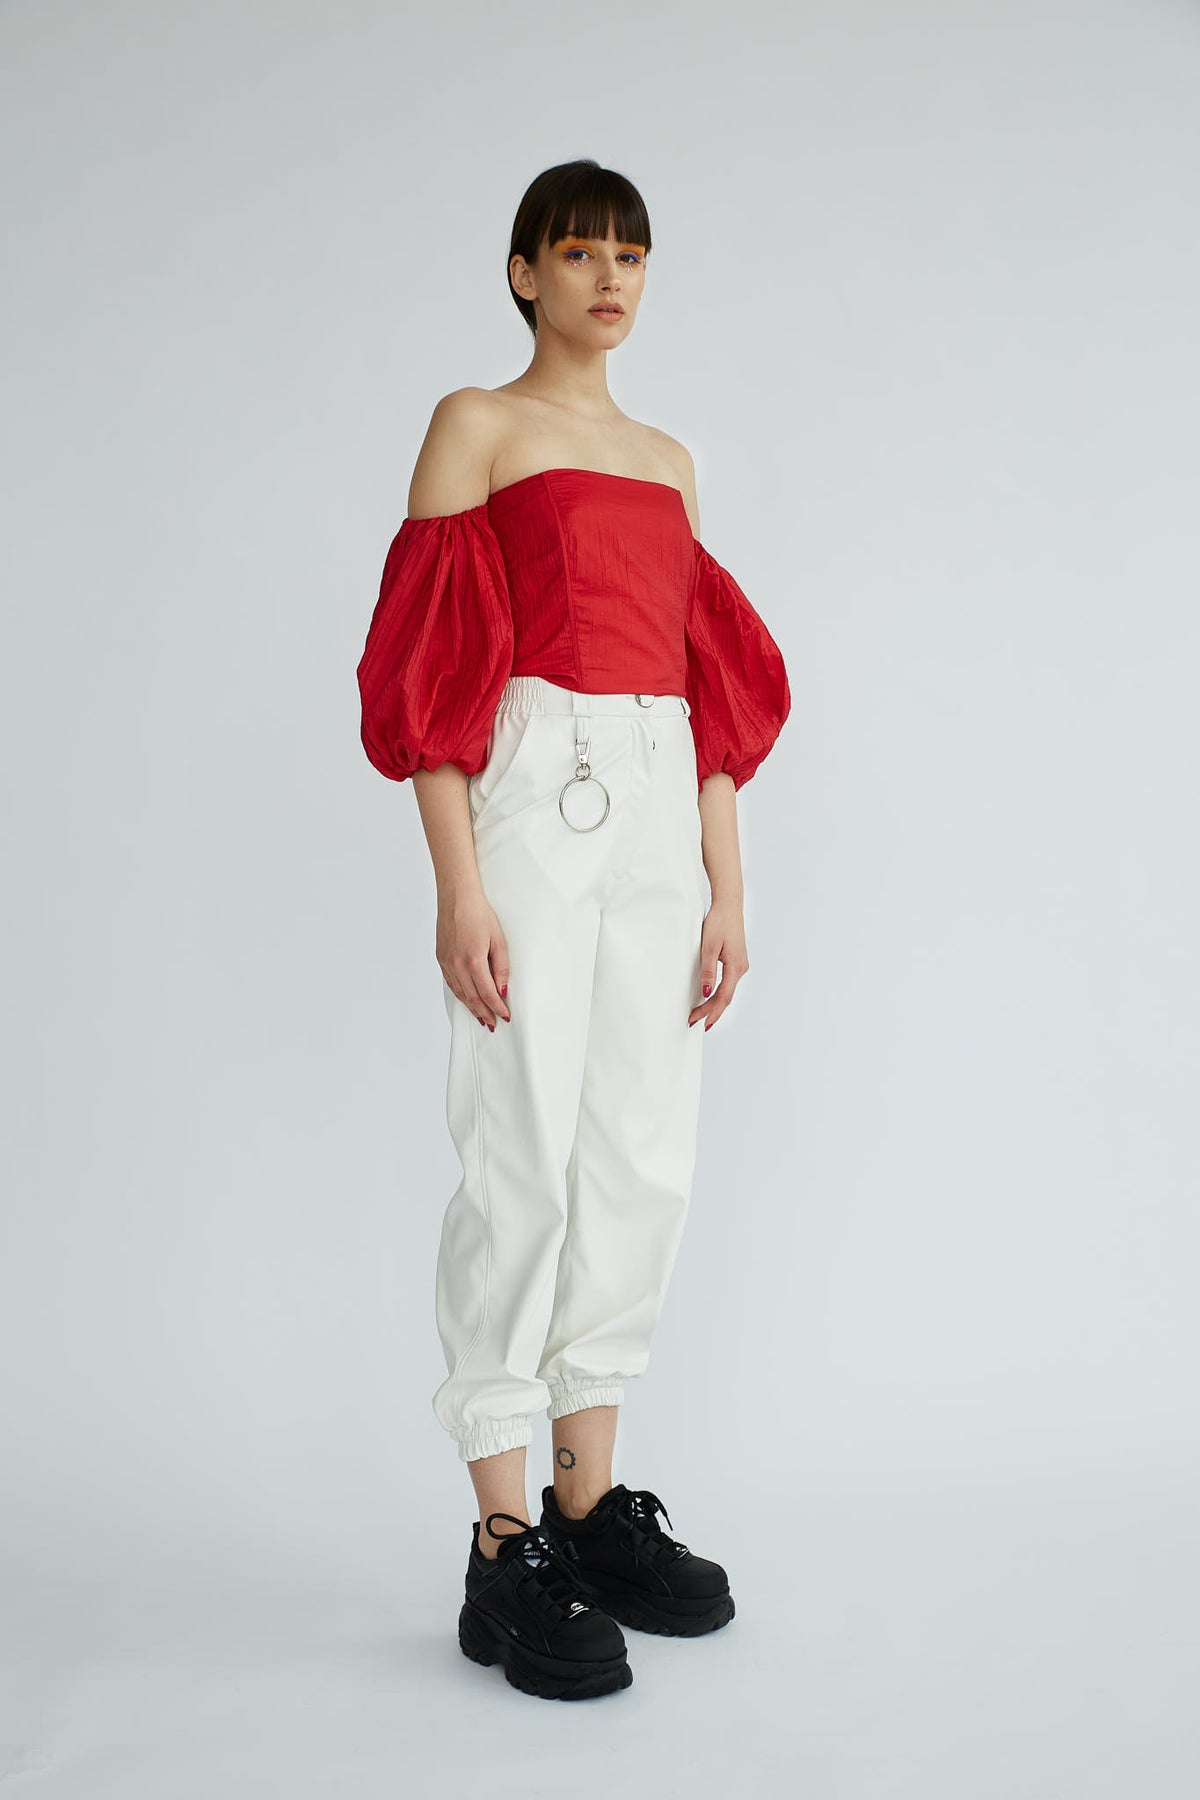 Frida-Red-Volume-Sleeve-Top-Le-Slap-Clothing-Off-Shoulder.jpg